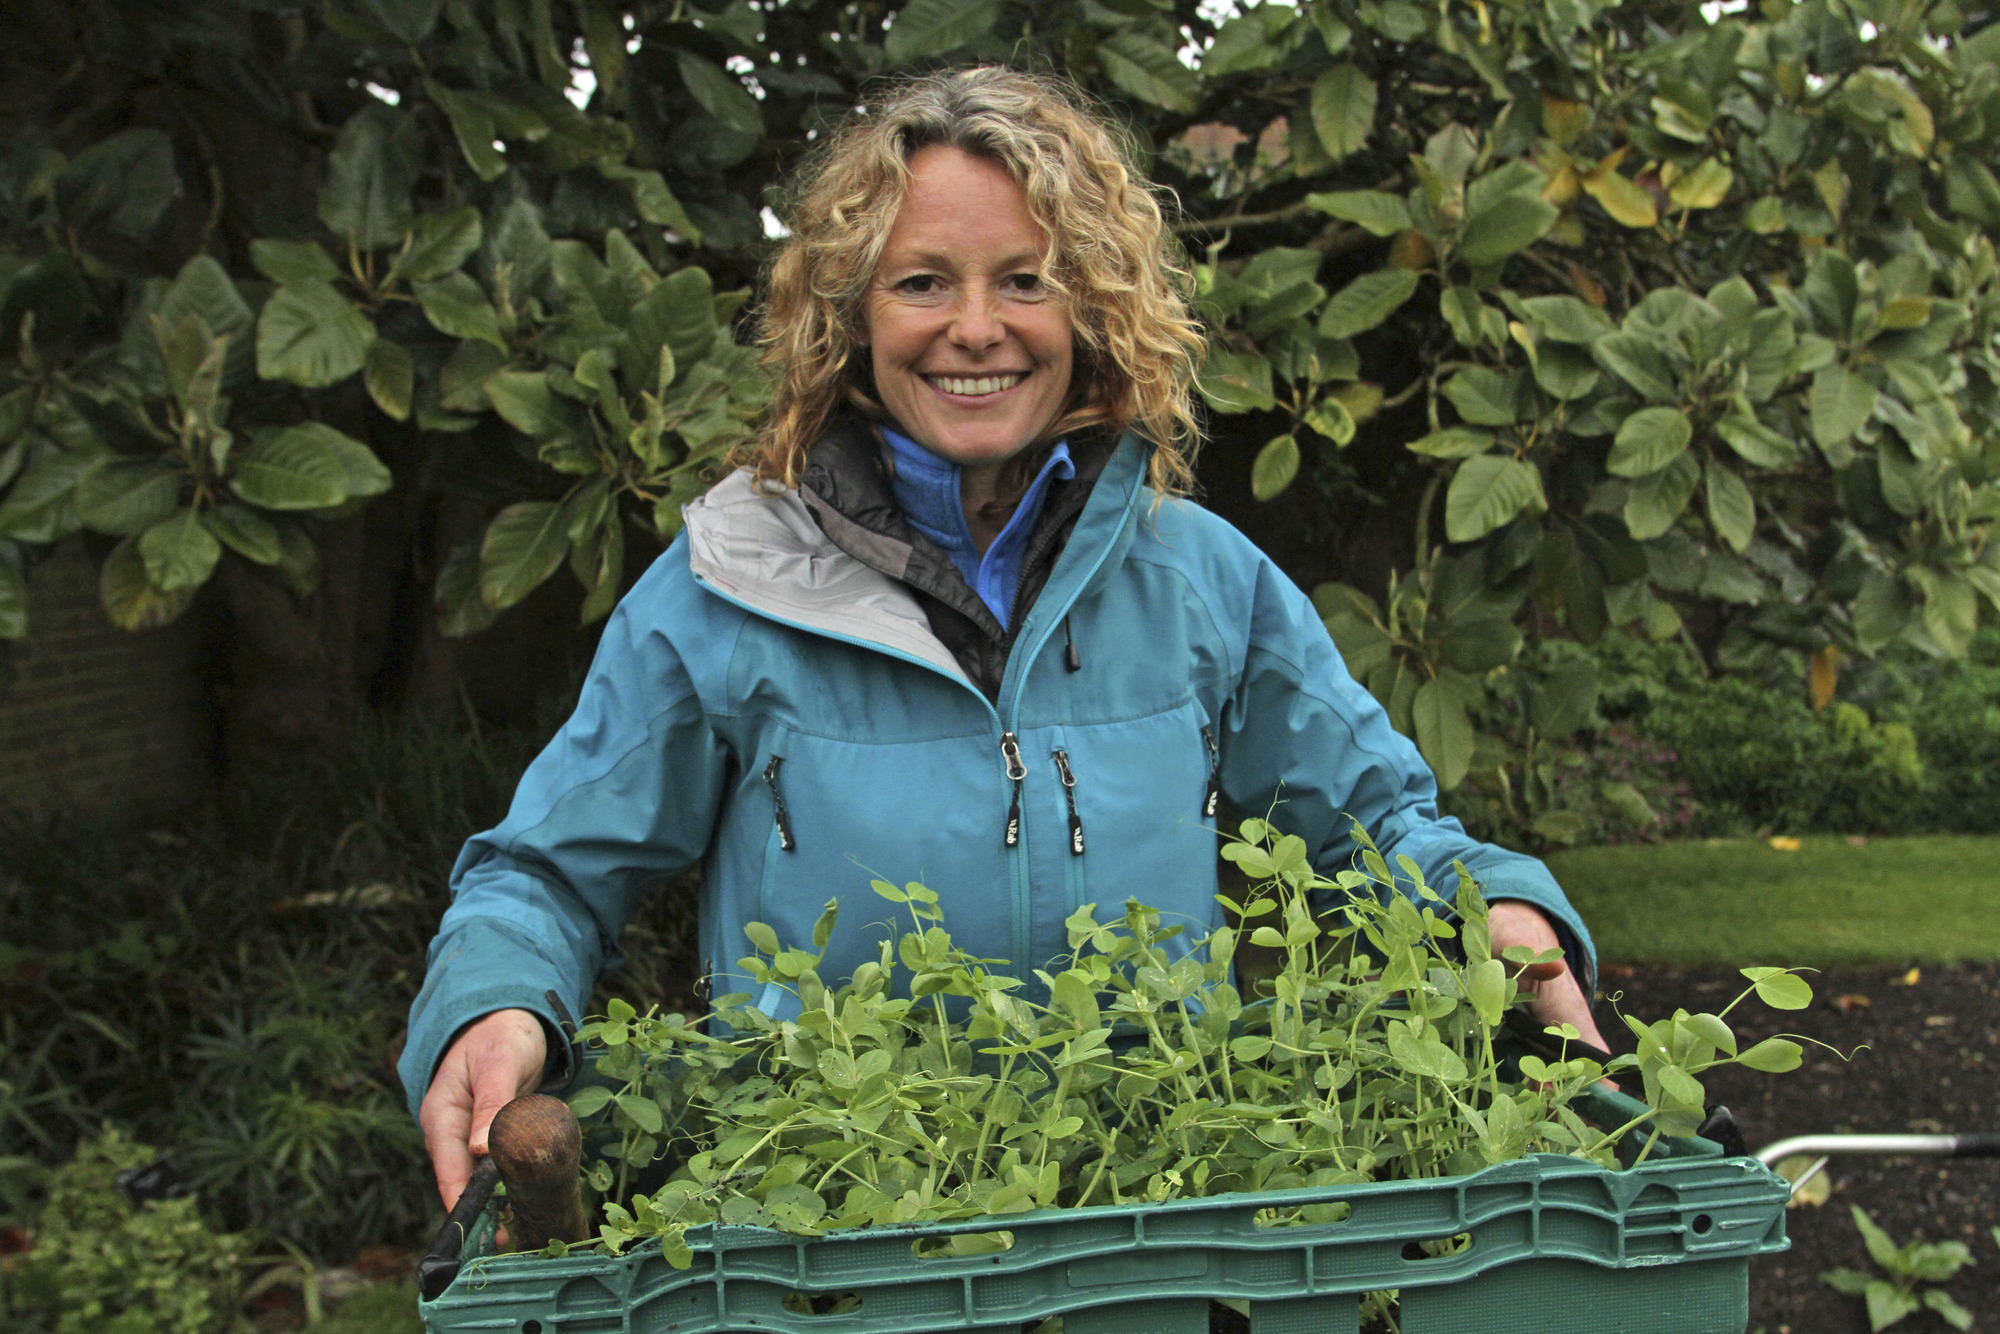 Kate Humble (Lion Television Ltd. Laura Rawlinson)